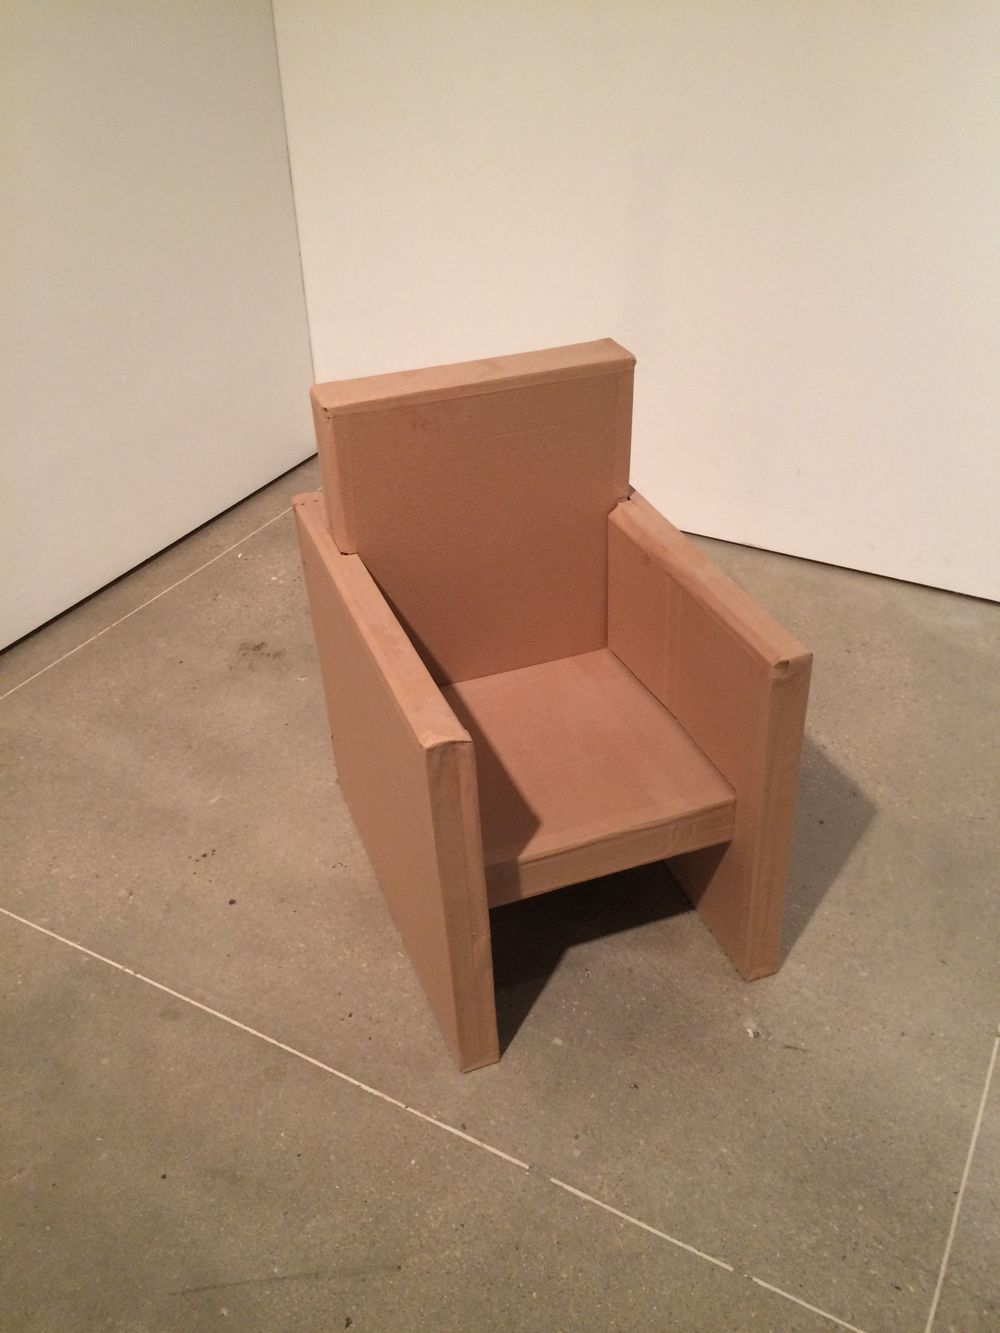 Cardboard Chair Assignment